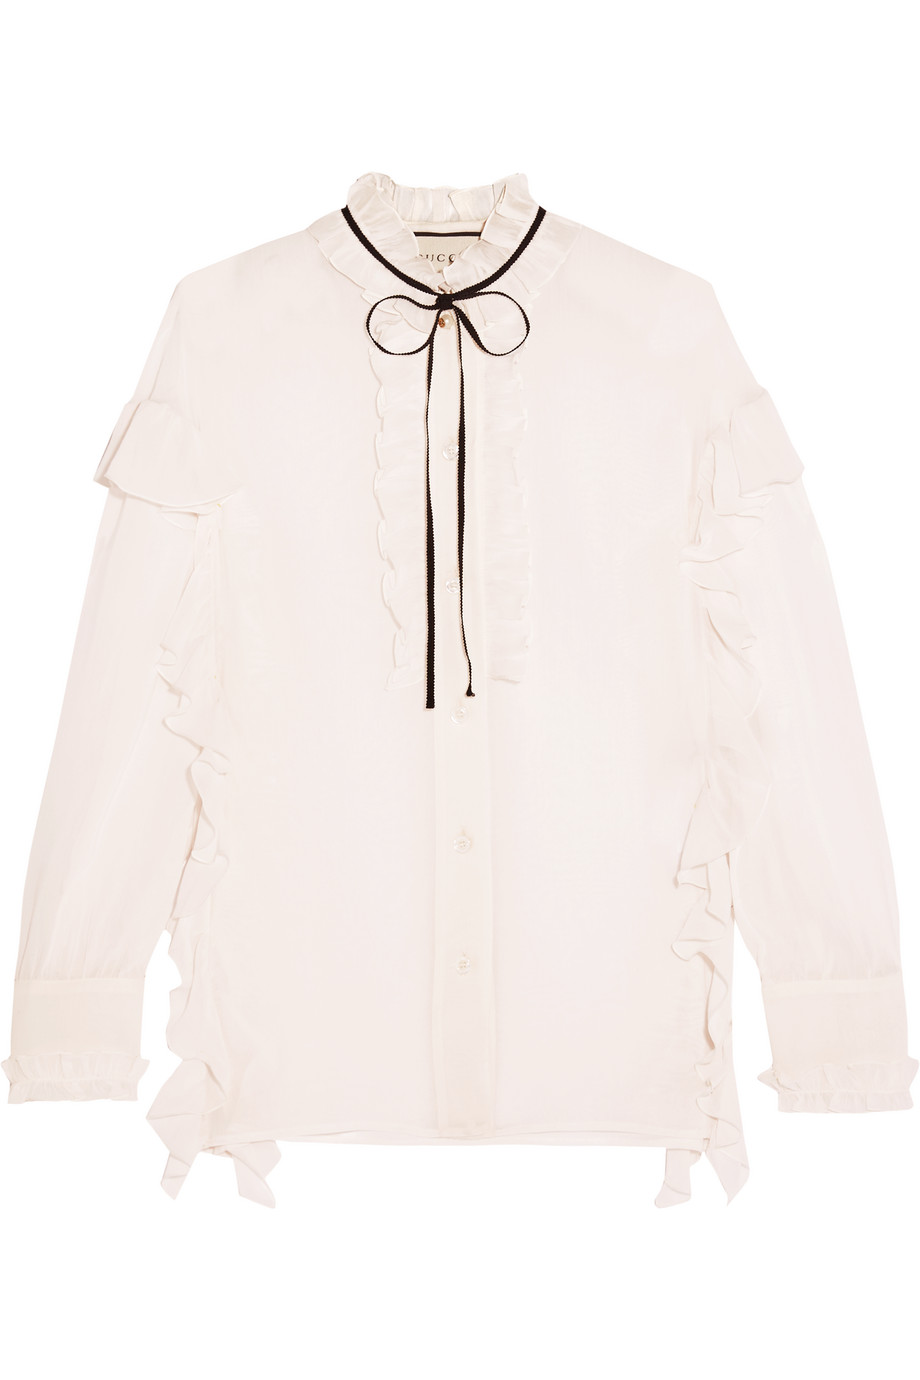 Gucci Ruffled Cotton and Silk-Blend Georgette Shirt, Size: 44